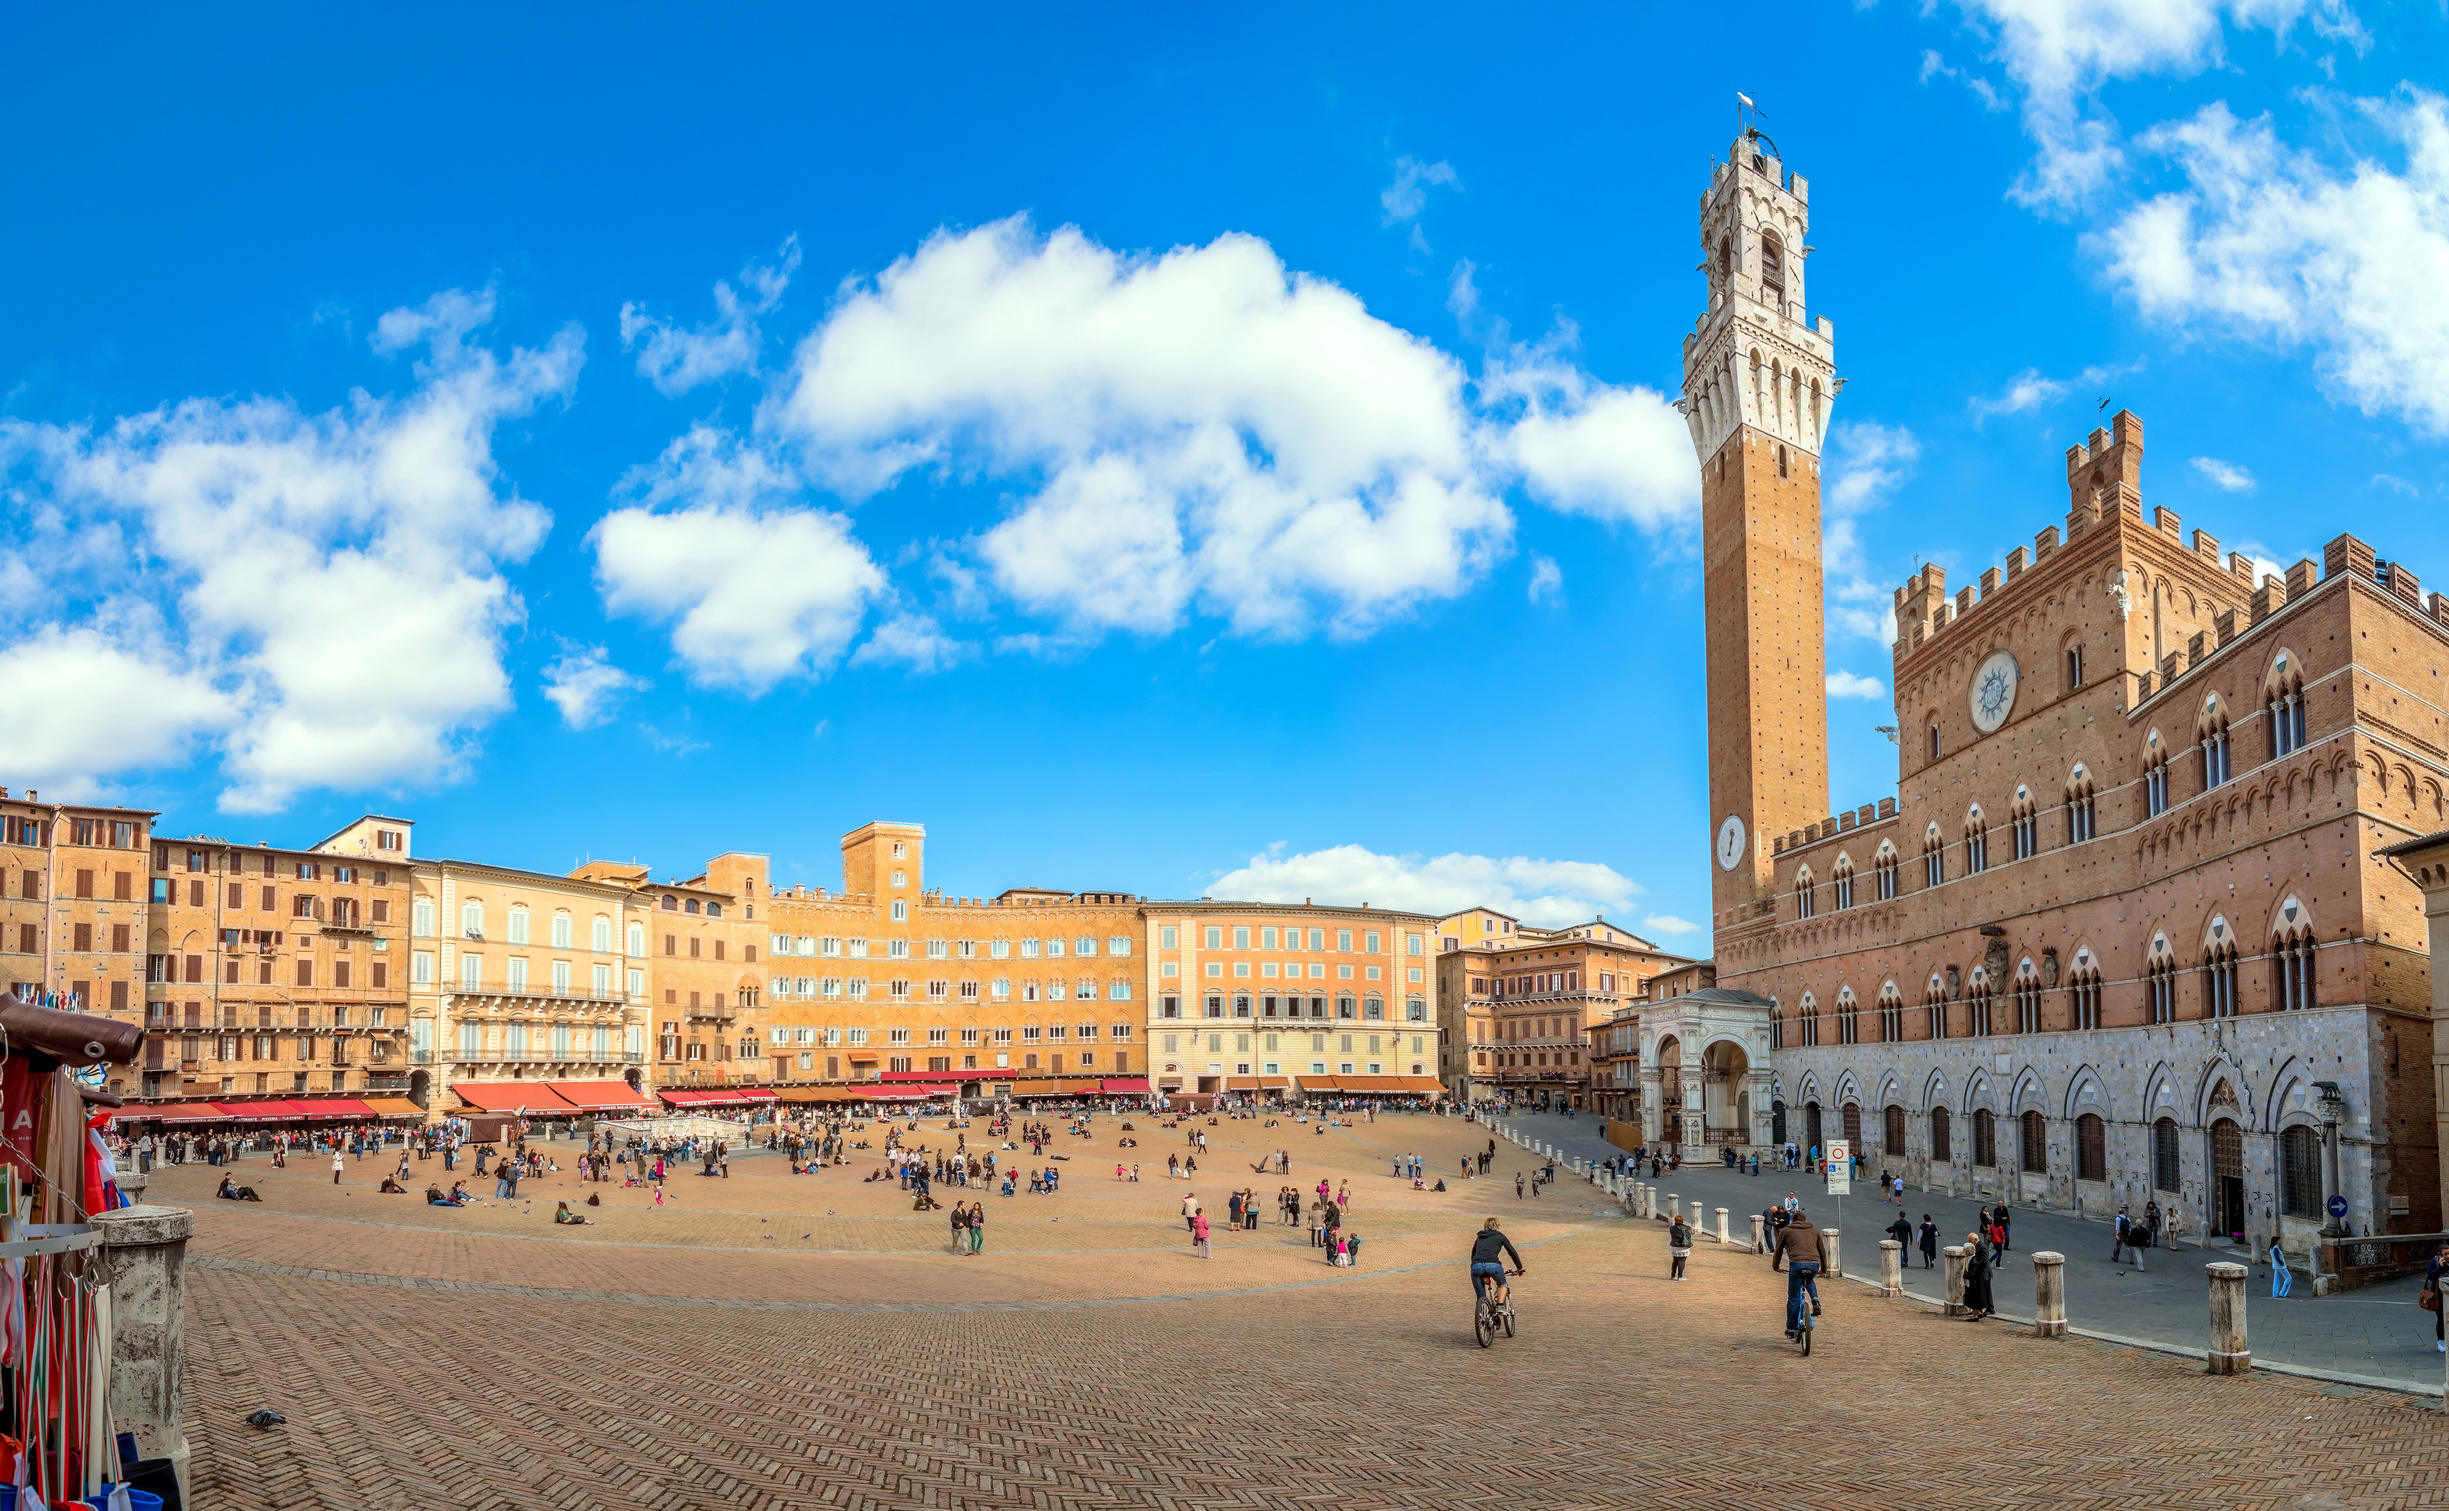 Copy of Campo Square with Mangia Tower, Siena, Italy